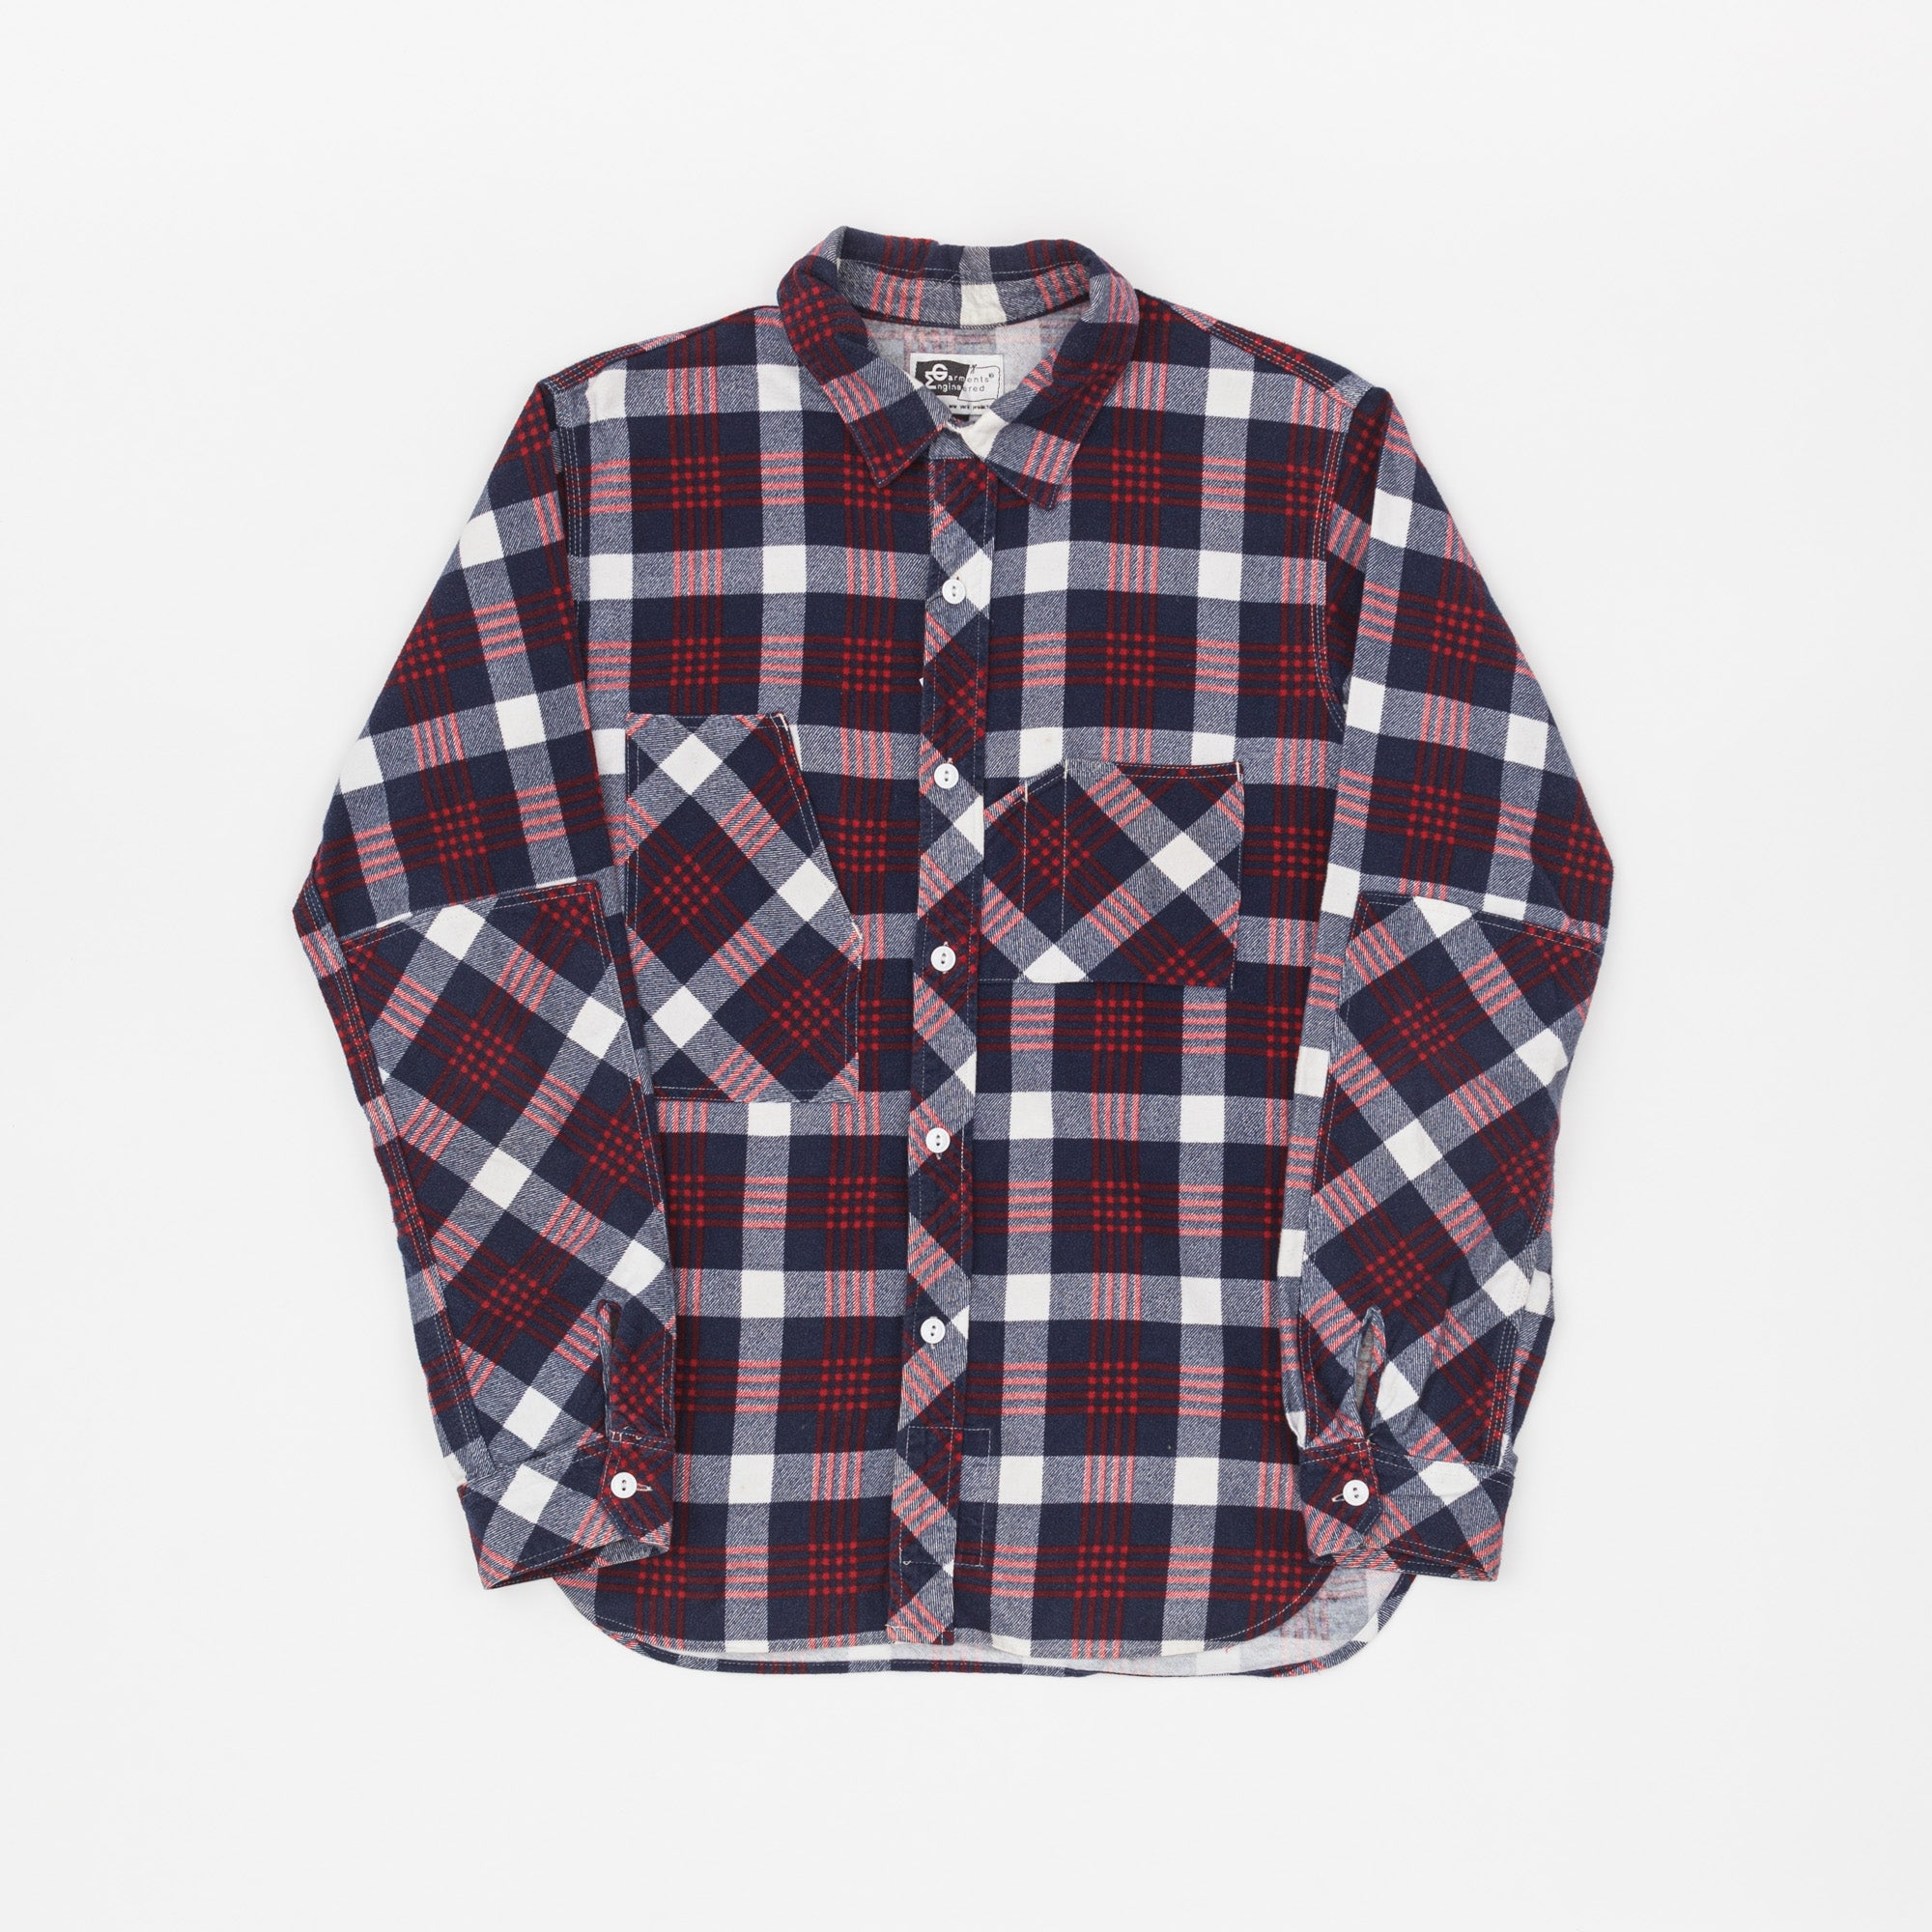 Engineered Garments Plaid Flannel Shirt